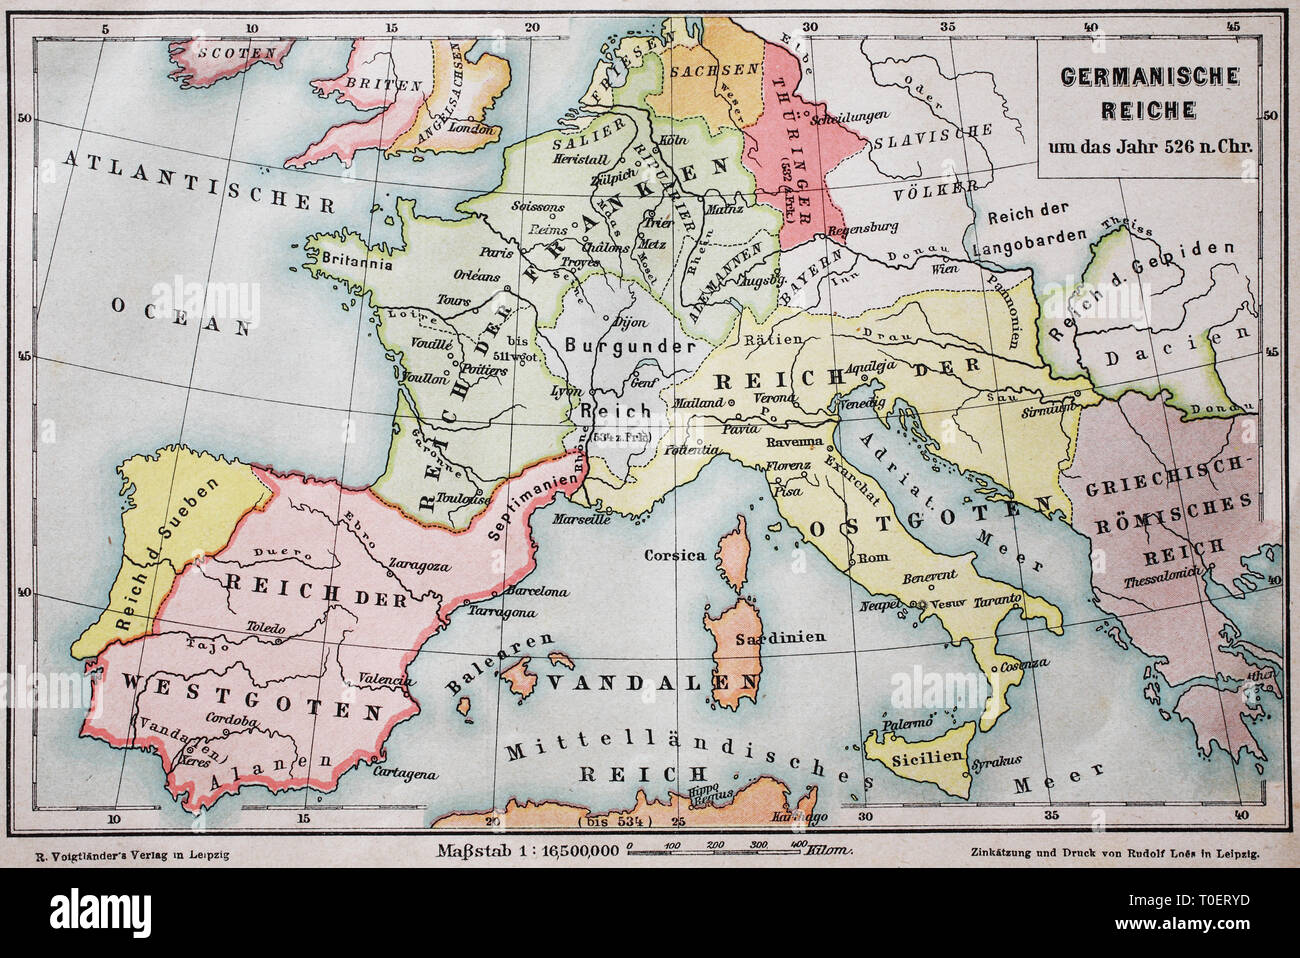 Historical map of the german empire in the year 526  /  Landkarte, das germanische Reich um das Jahr 526 n.Chr. - Stock Image